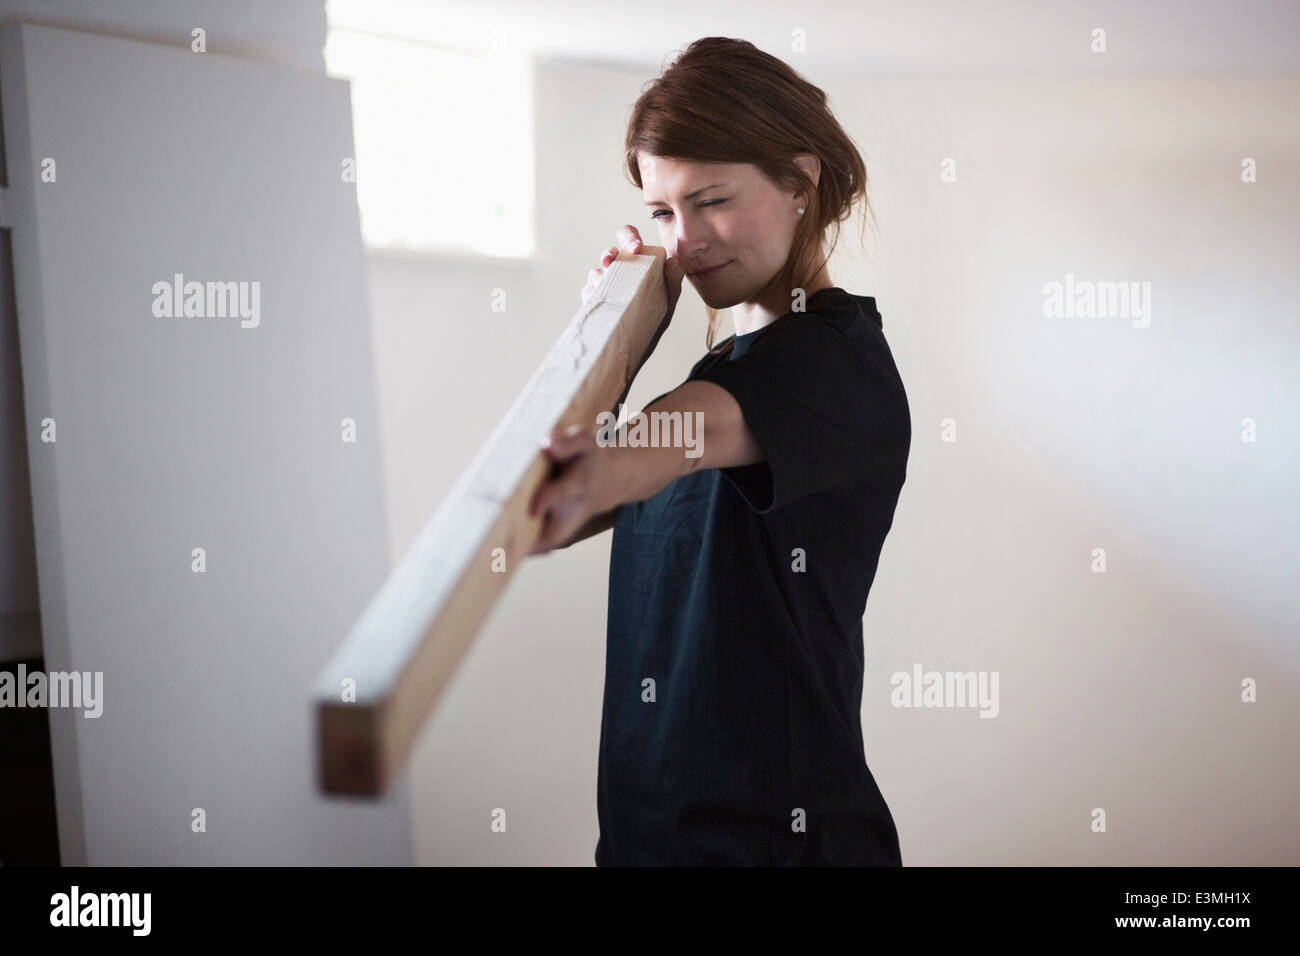 Female carpenter examining wooden plank at site - Stock Image